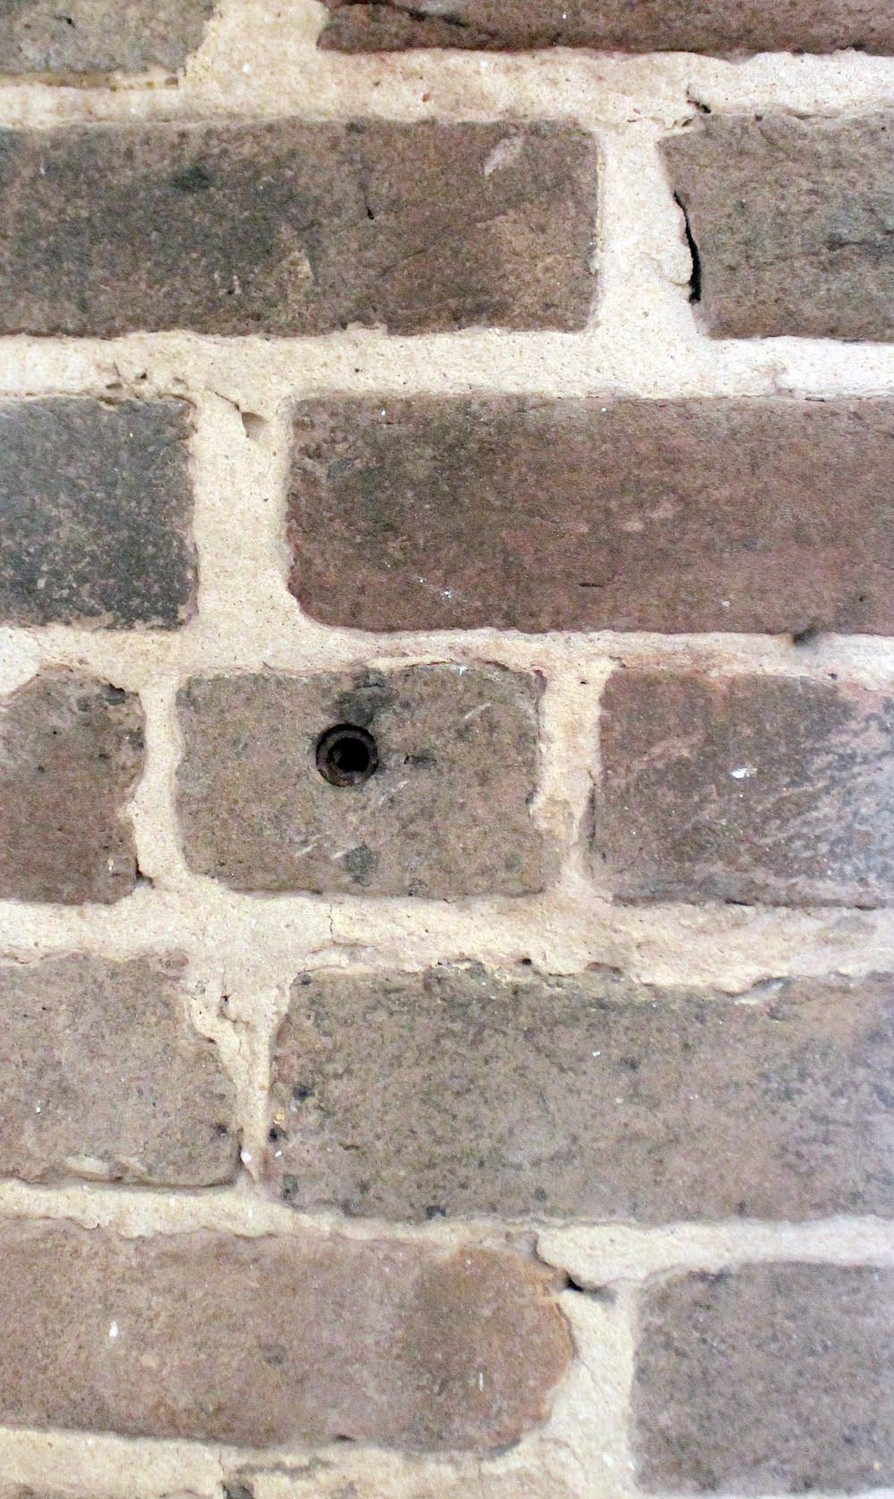 THIS BULLET HOLE in the brick wall of the Presbyterian Church was from the Civil War .